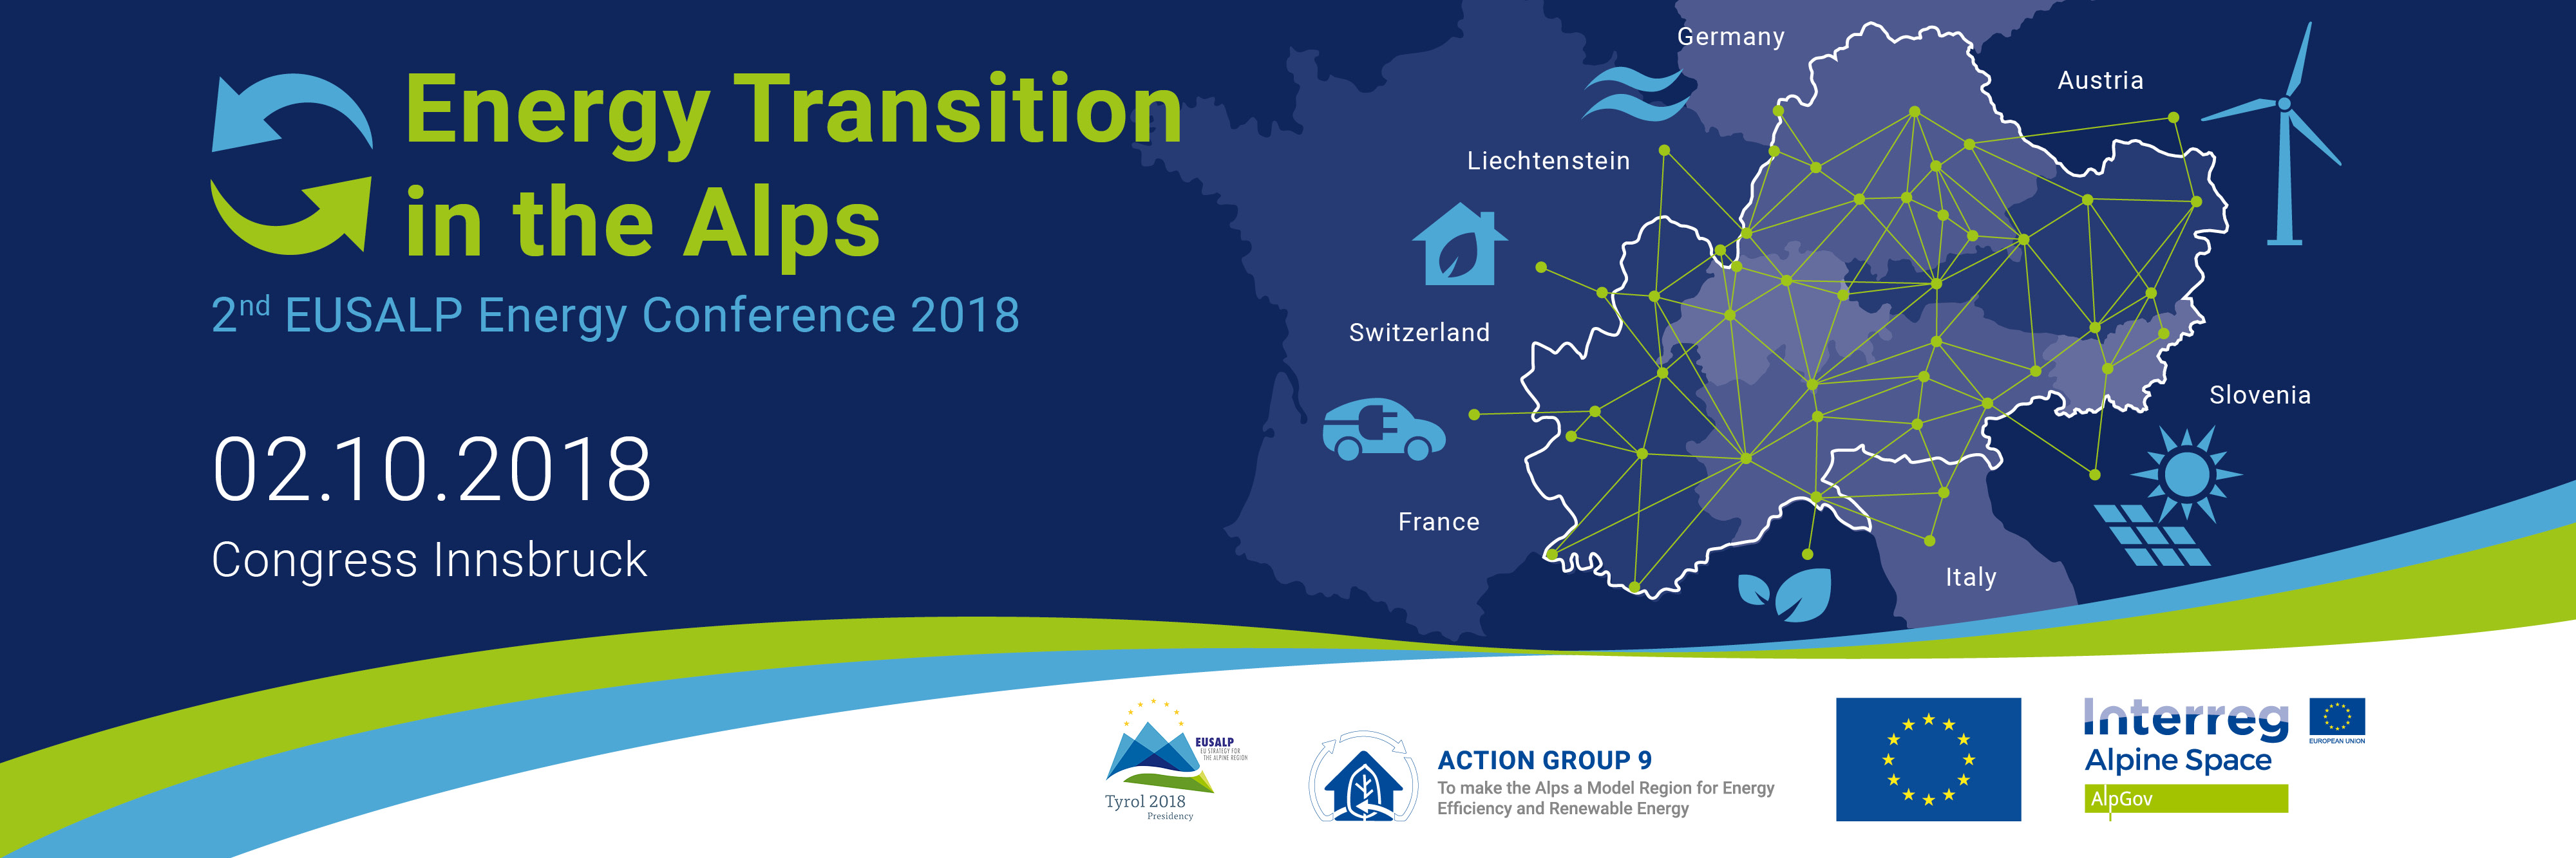 EUSALP Energy Conference 2018 - ENERGY TRANSITION IN THE ALPS | EUSALP